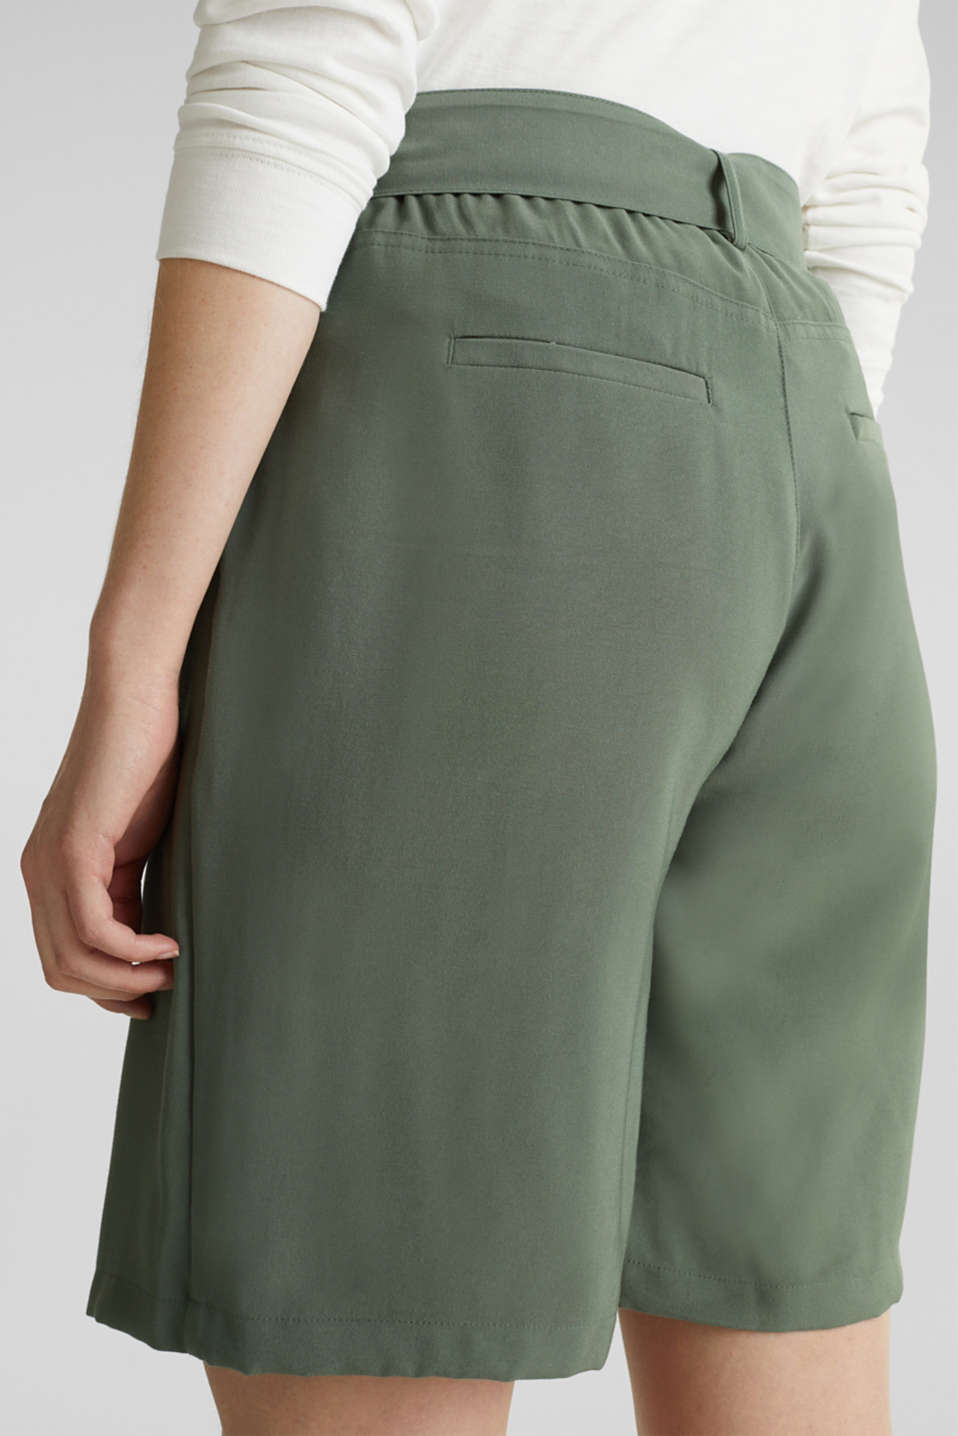 Skirt shorts in a utility look, KHAKI GREEN, detail image number 4